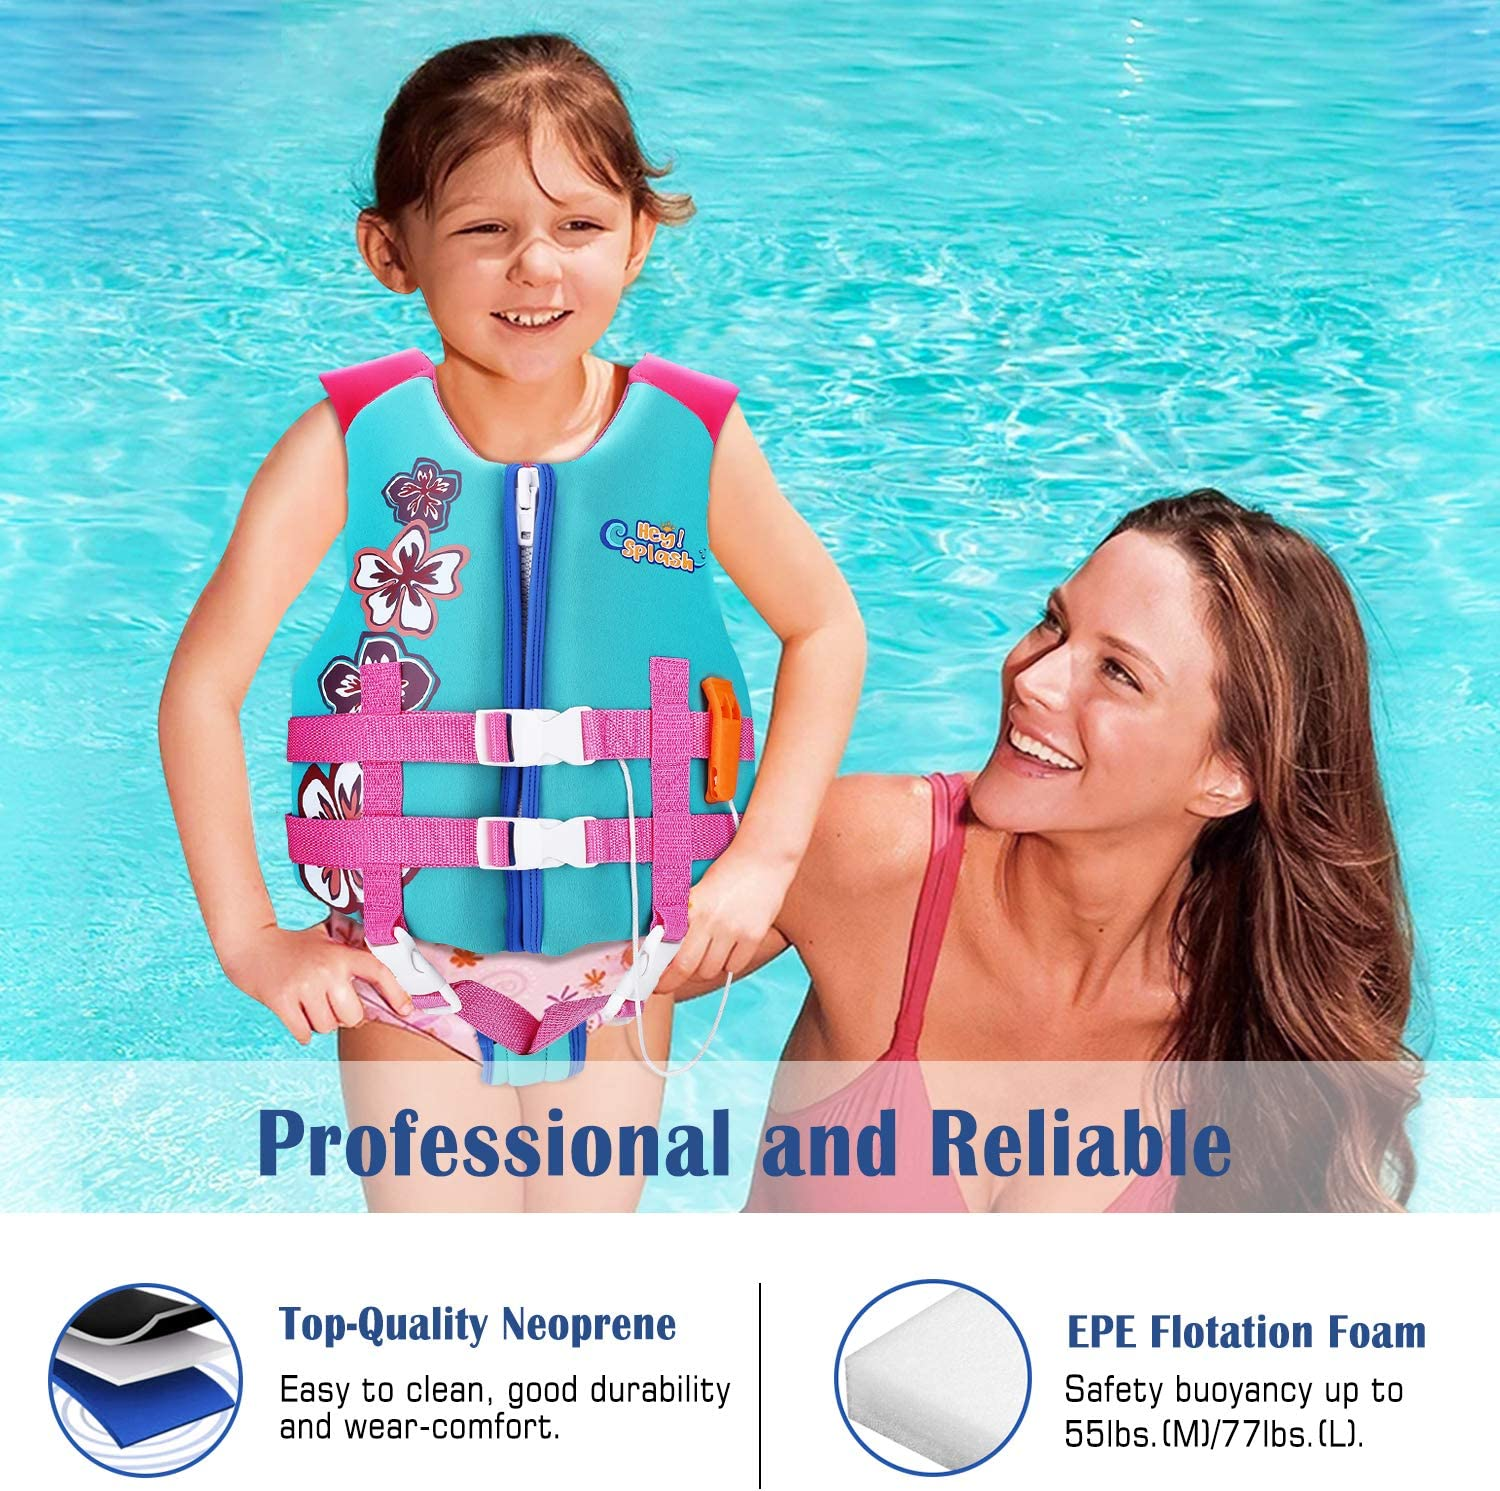 Size L Suitable for 35-55 lbs HeySplash Life Jacket for Kids Child Size Watersports Swim Vest Flotation Device Trainer Vest with Survival Whistle Easy on and Off Size M // 55-77 lbs